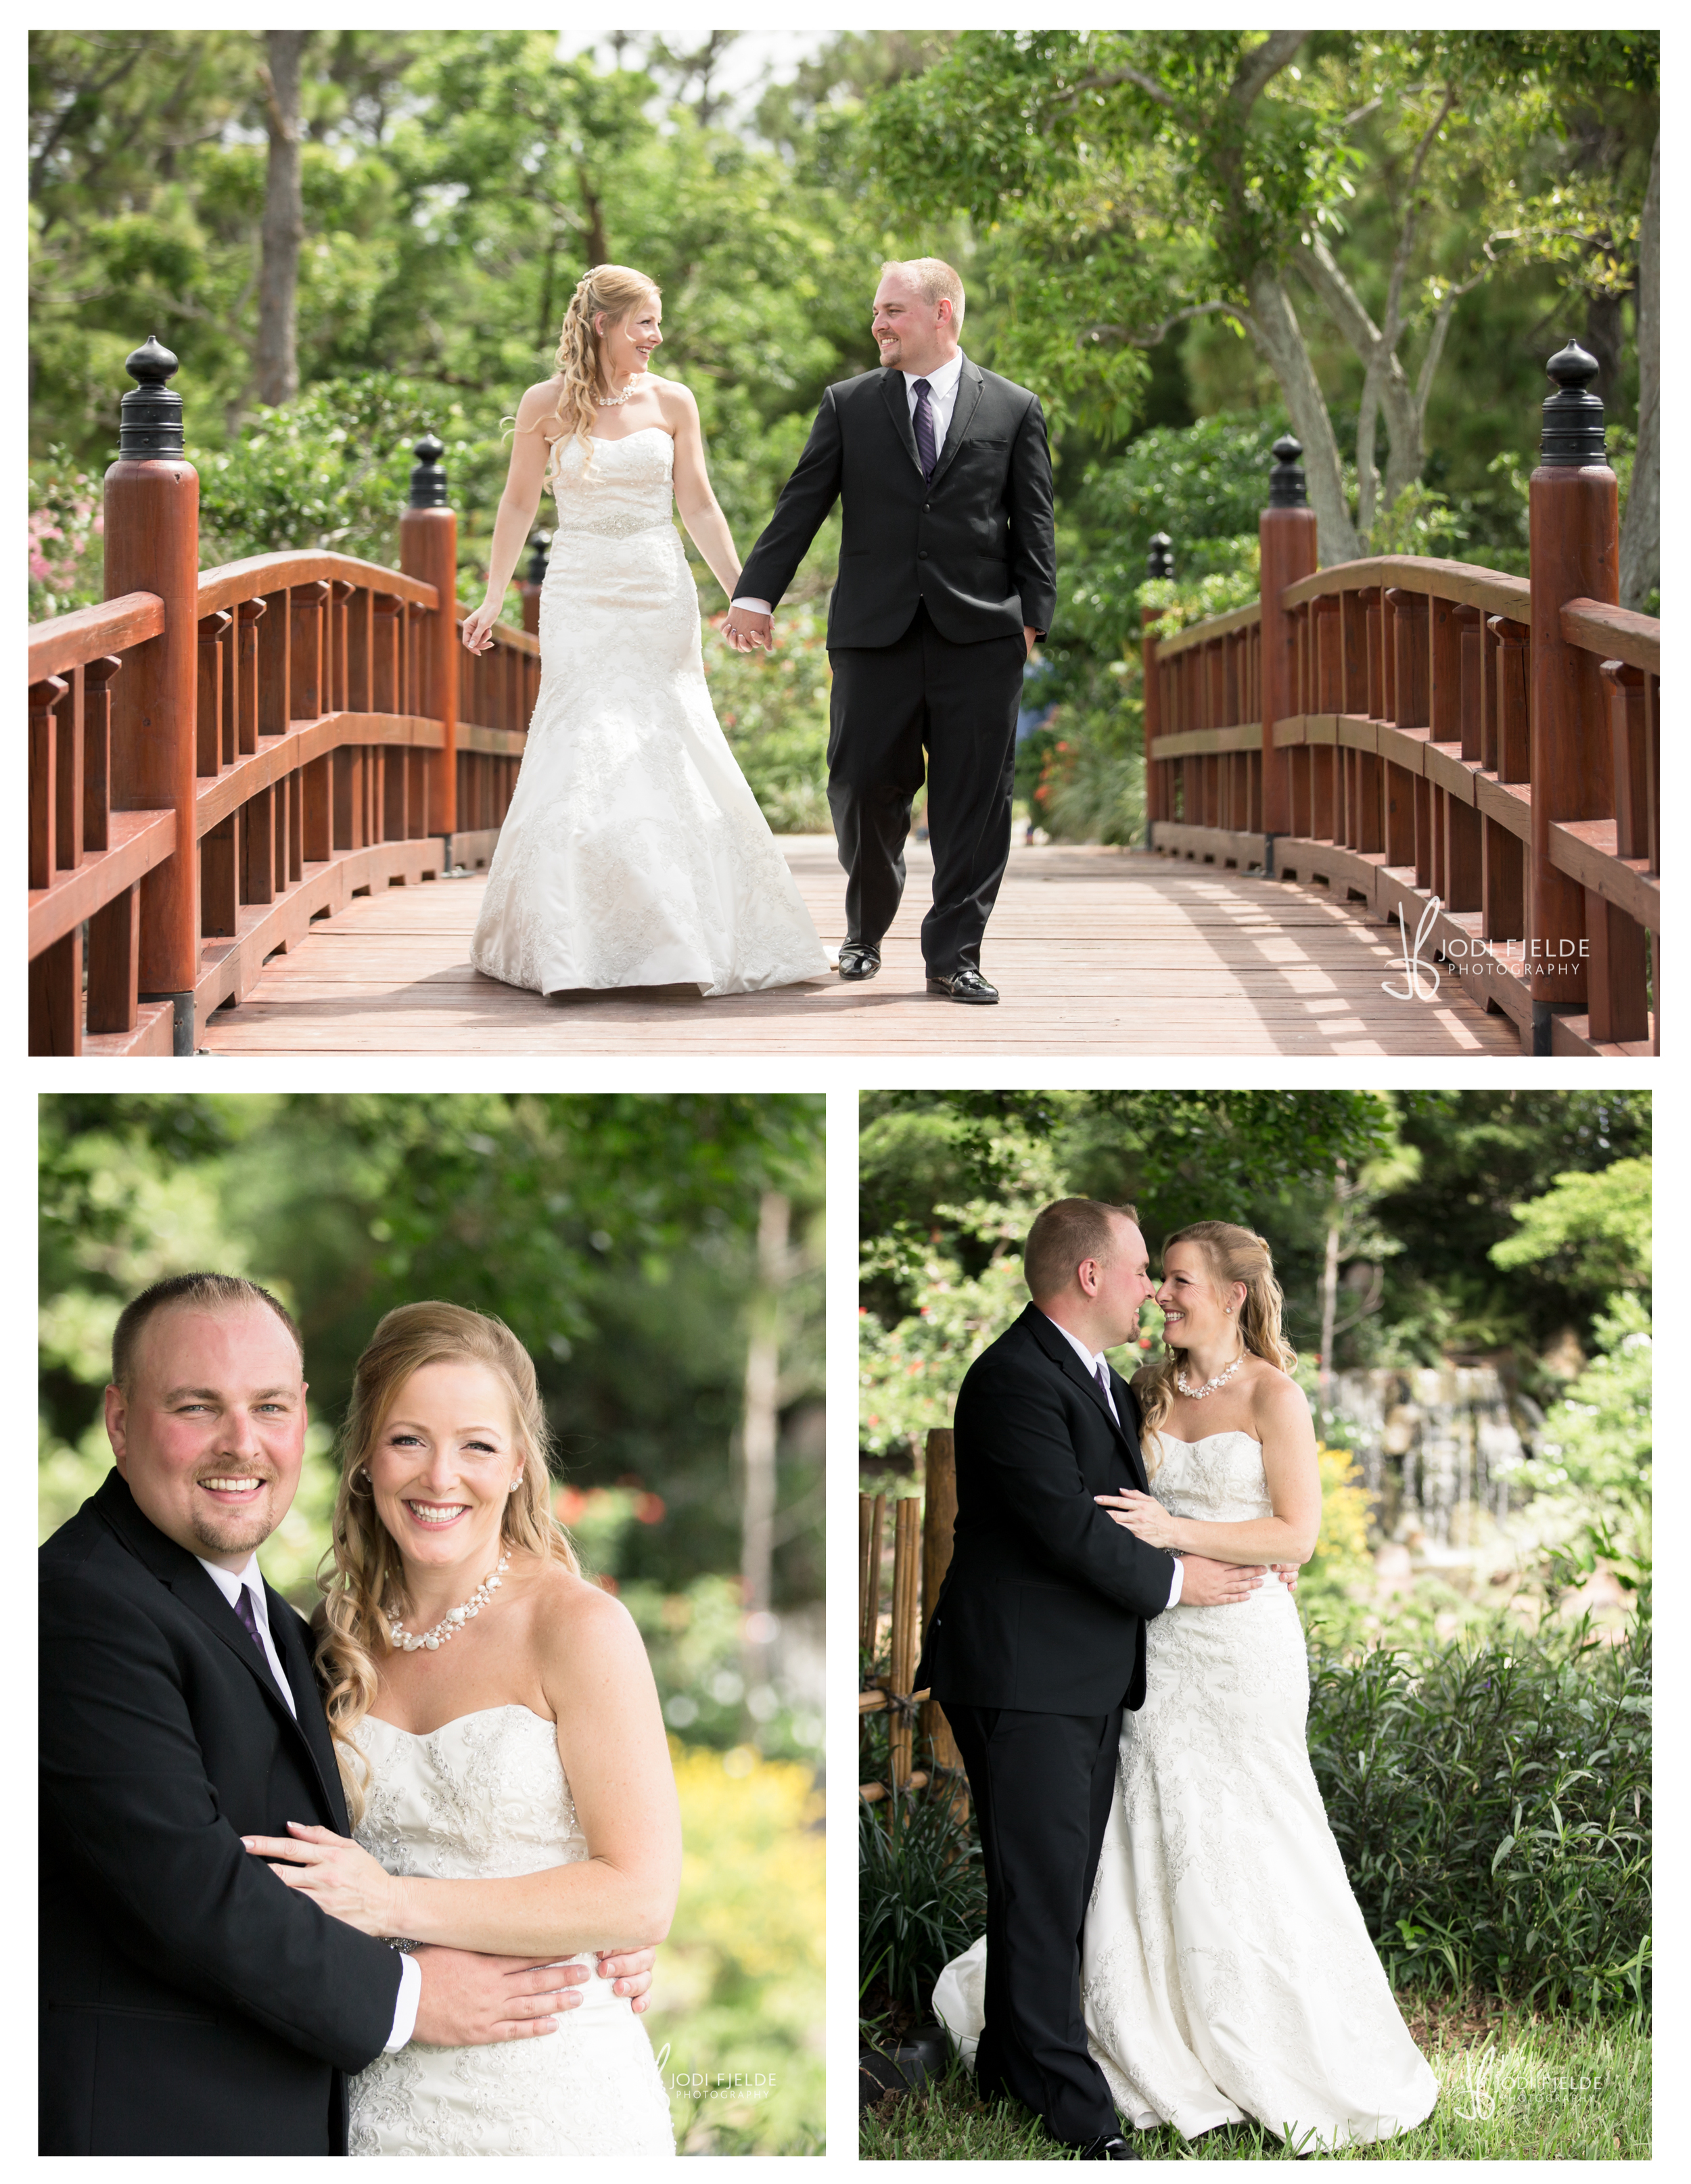 Morikami_Delray_Beach_Golf_Club_Wedding_Jenna & Brian 15.jpg